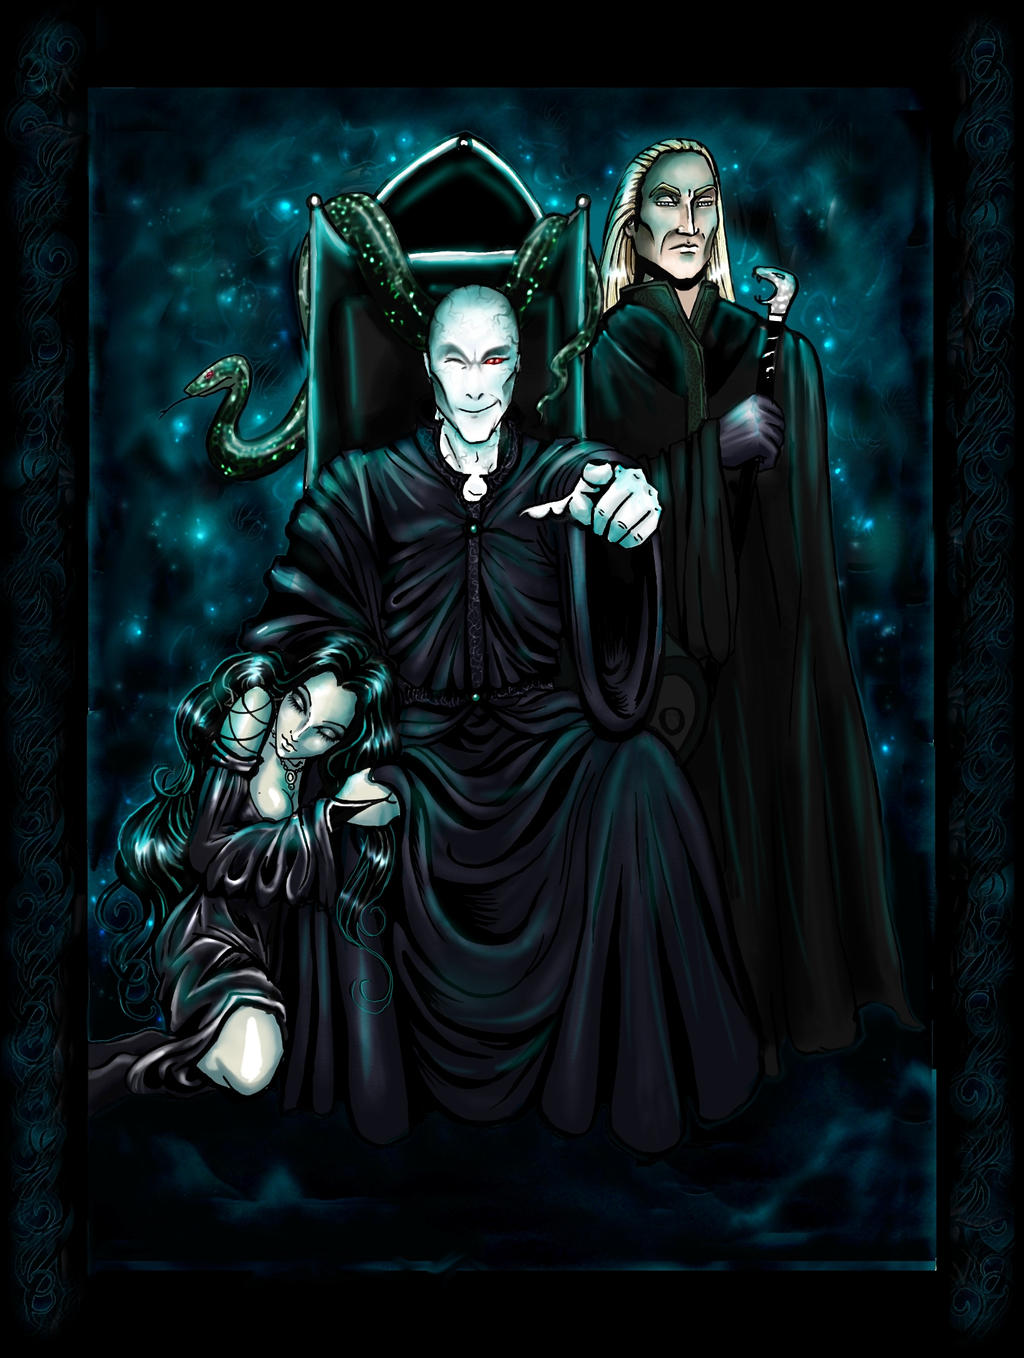 http://fc04.deviantart.net/fs19/i/2007/244/5/6/VOLDEMORT_WANTS_YOU_TO____by_Vaulderie.jpg